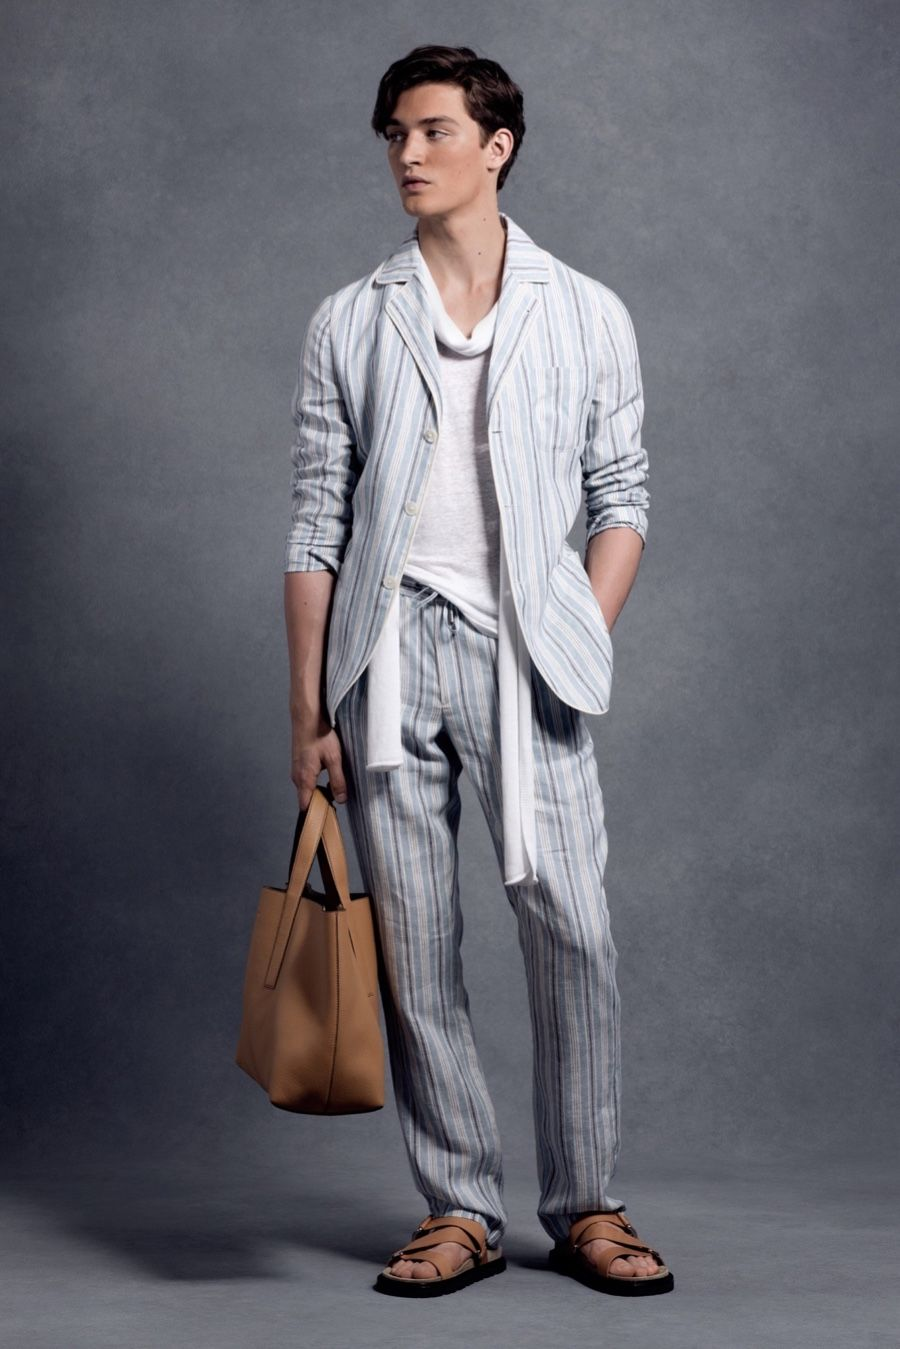 Michael-Kors-Spring-Summer-2016-Collection-Look-Book-New-York-Fashion-Week-Men-006